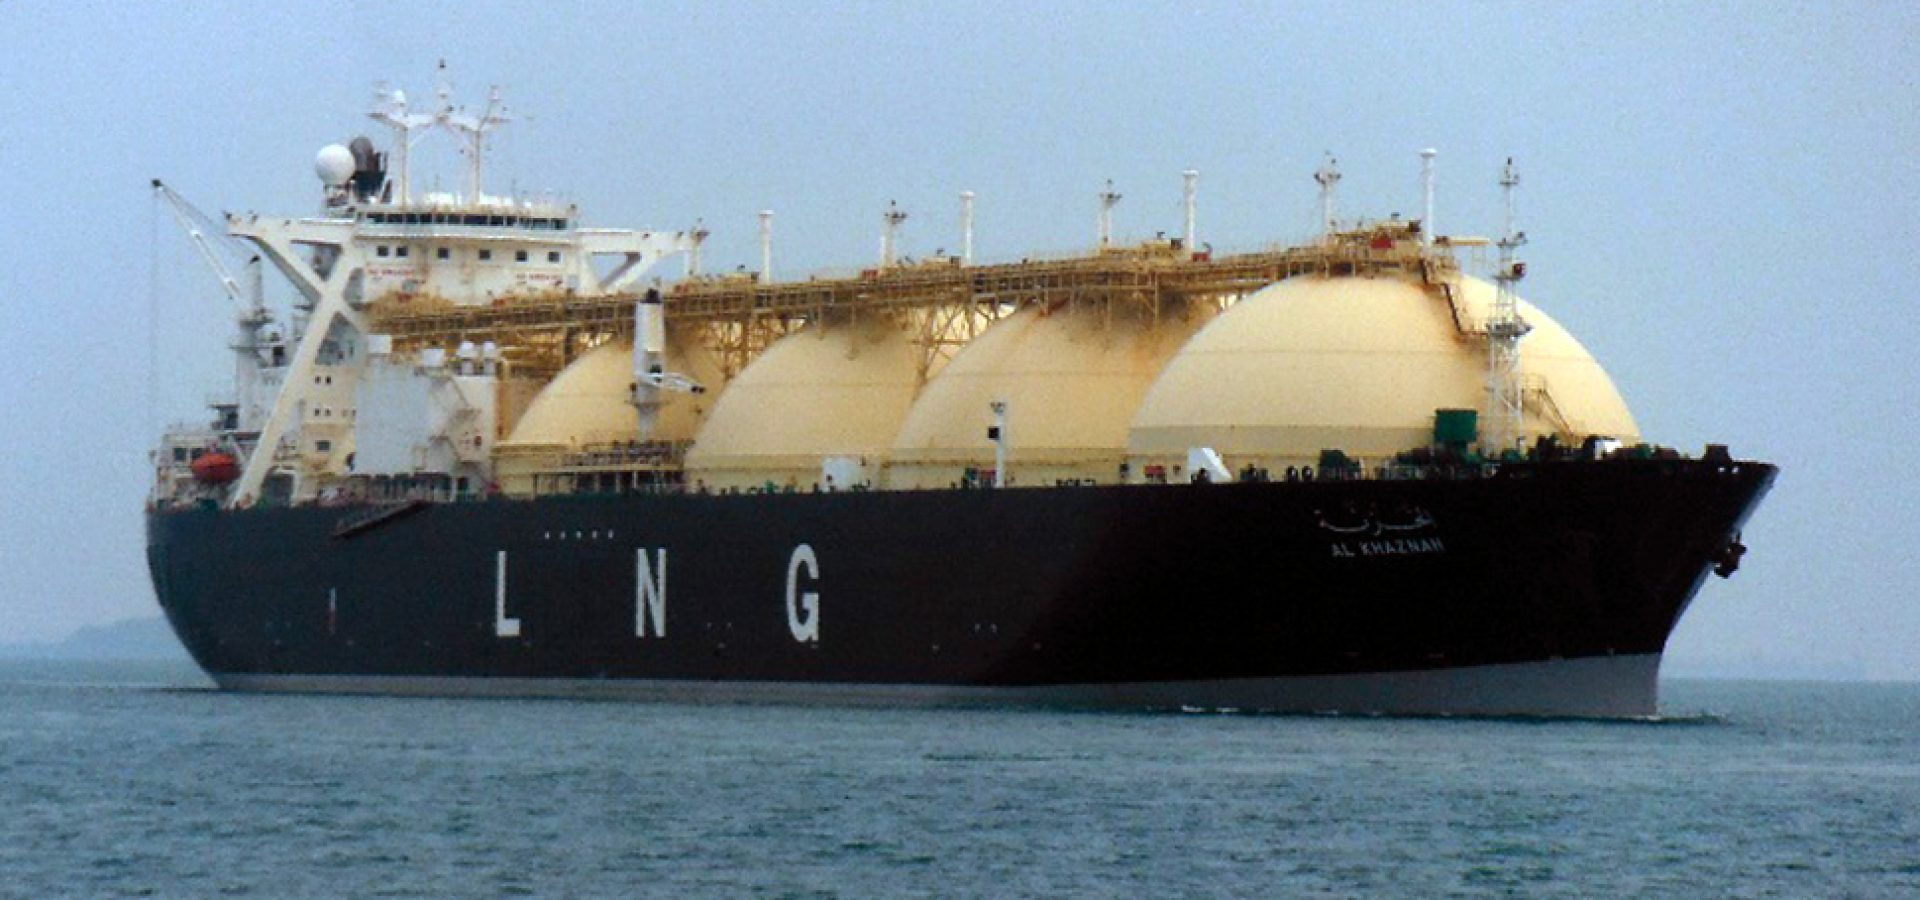 Al Khaznah LNG ship owned by ADNATCO NGSCO.